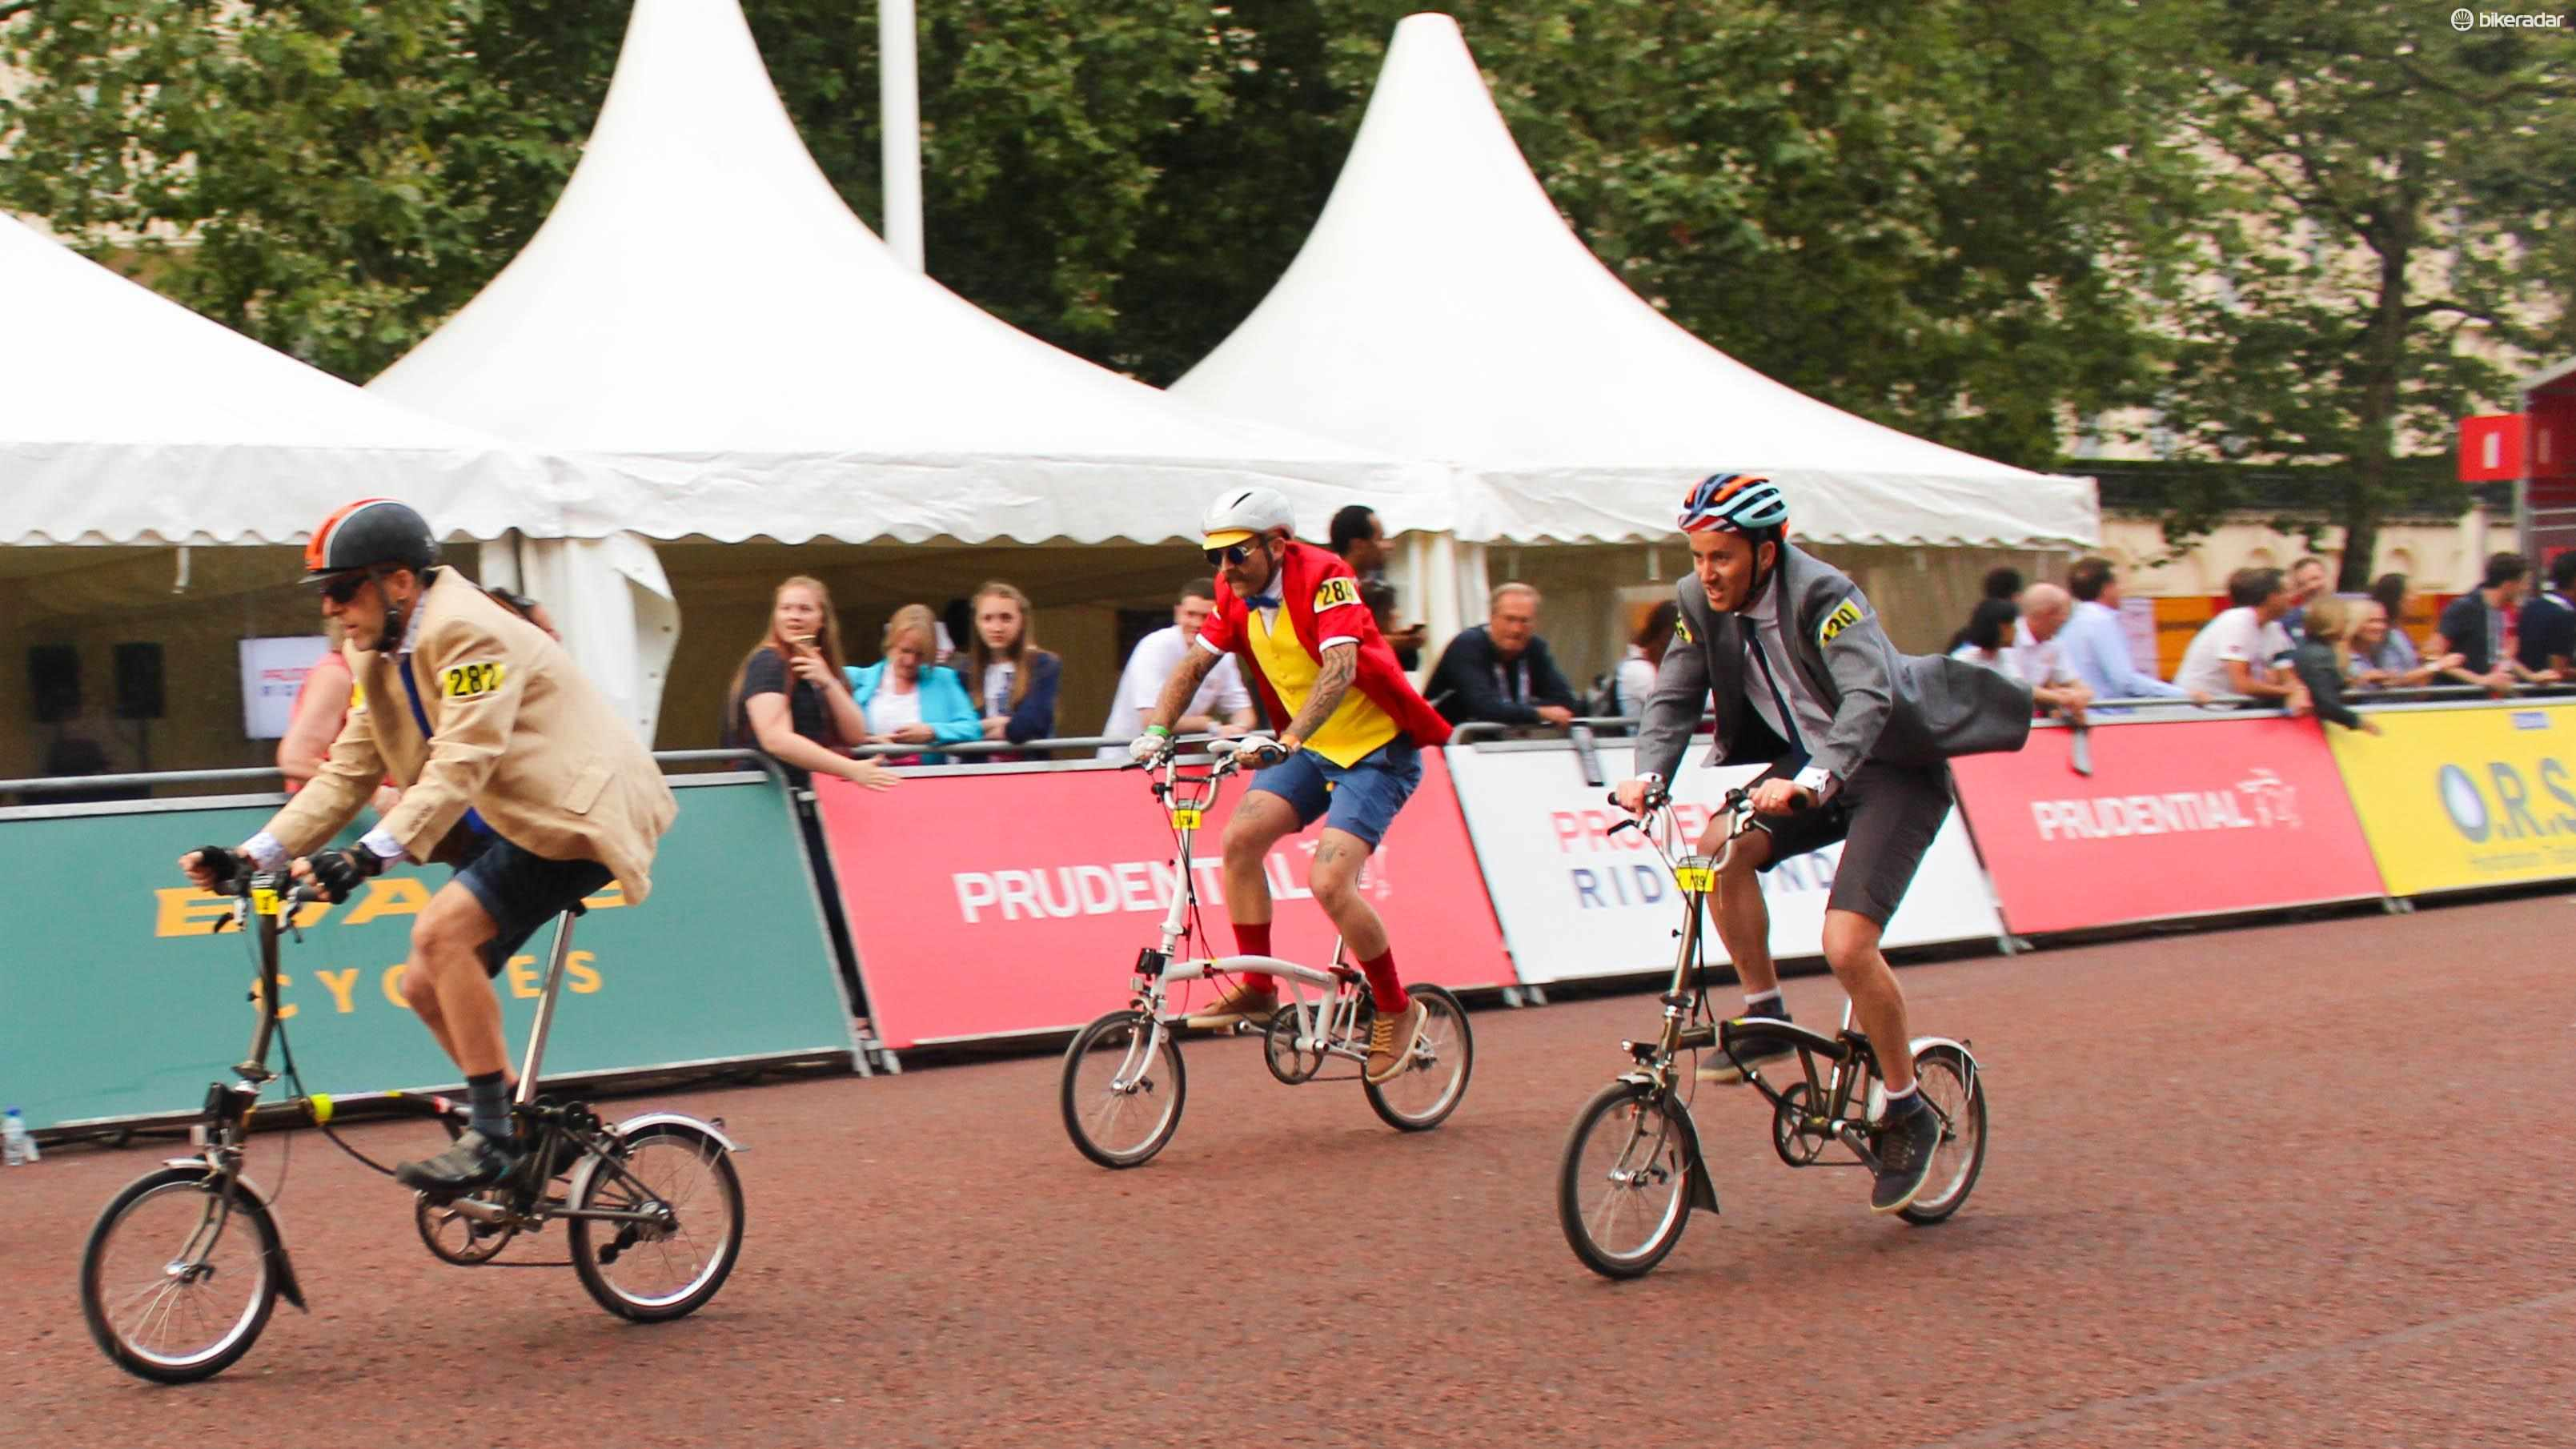 I loved racing in the Brompton World Championships Final